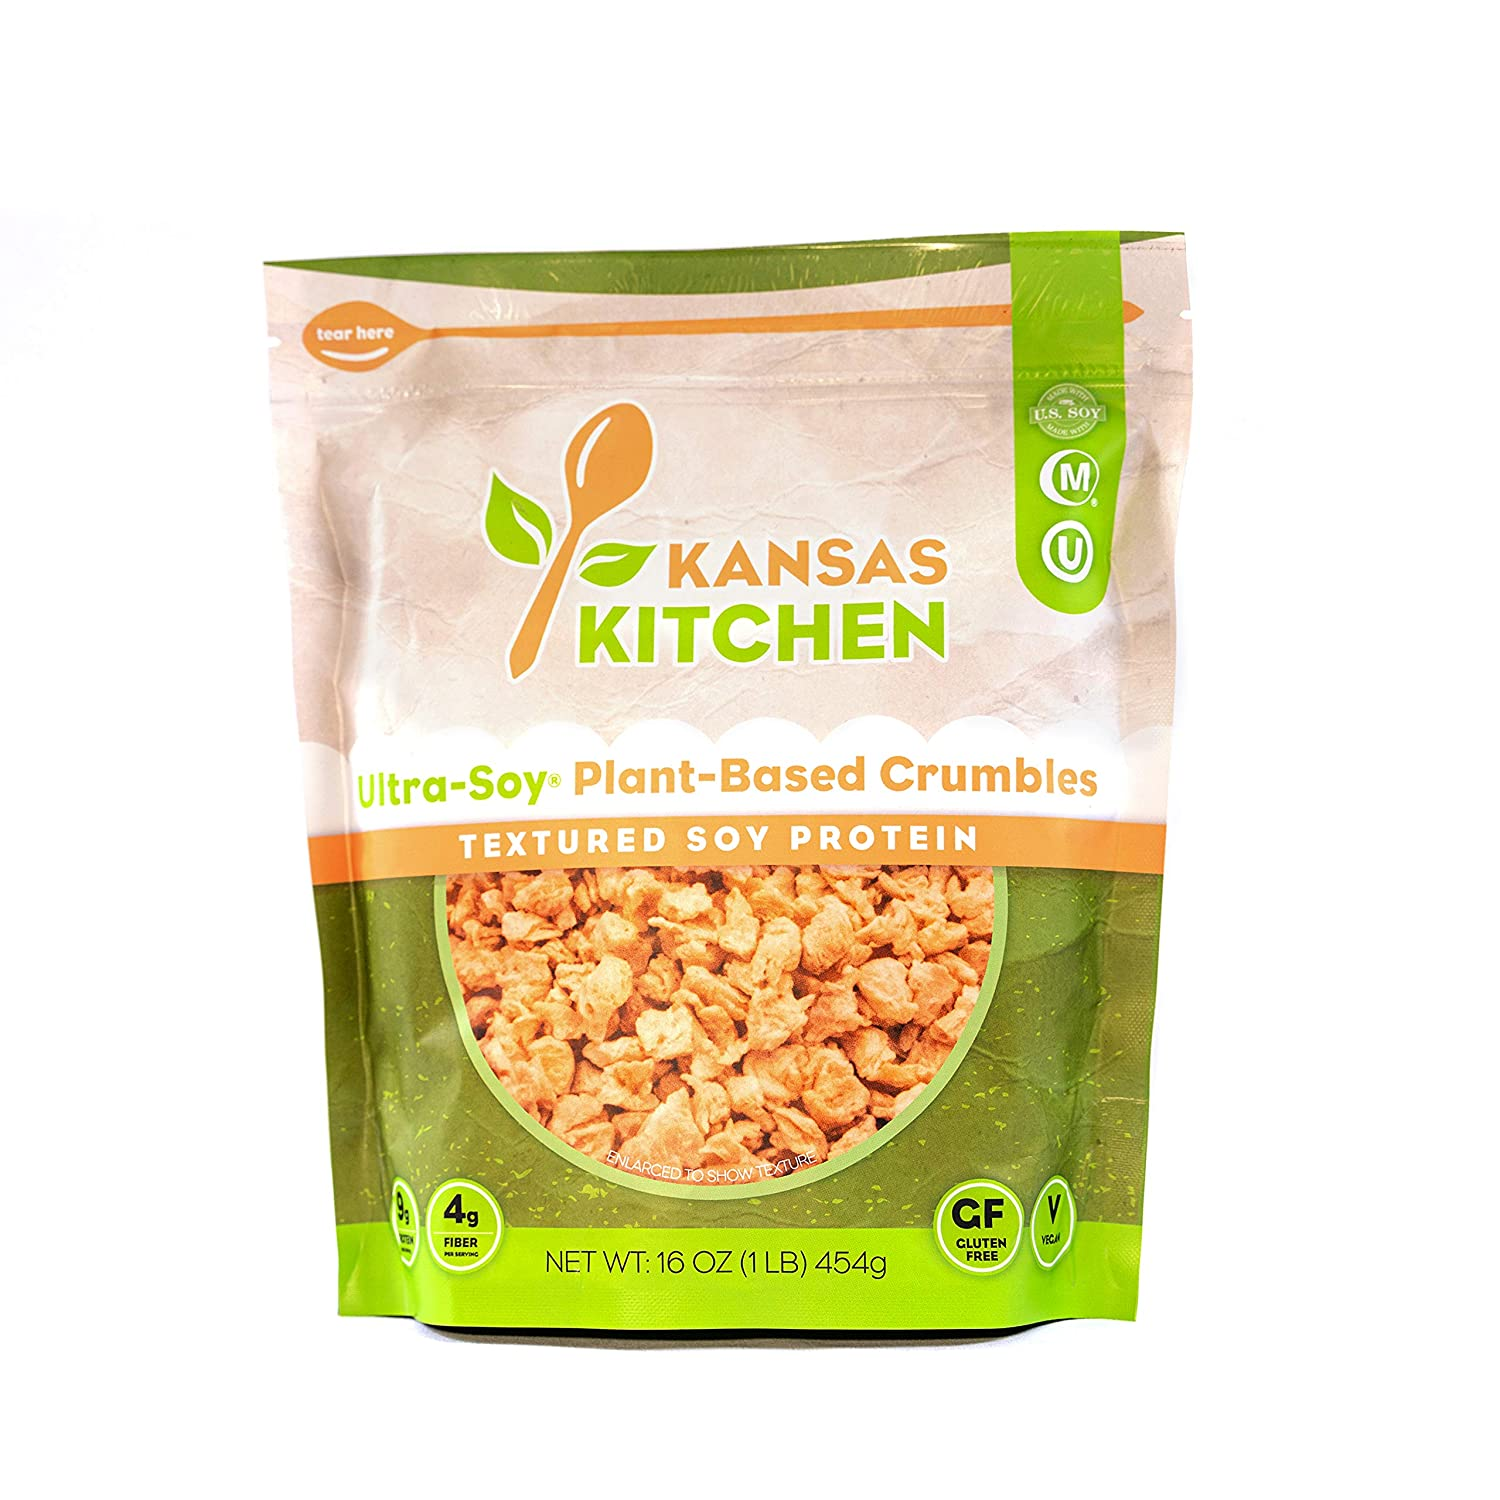 Kansas Sale Special Price Kitchen - Ultra-Soy Te Superlatite Crumbles Unflavored Plant-Based